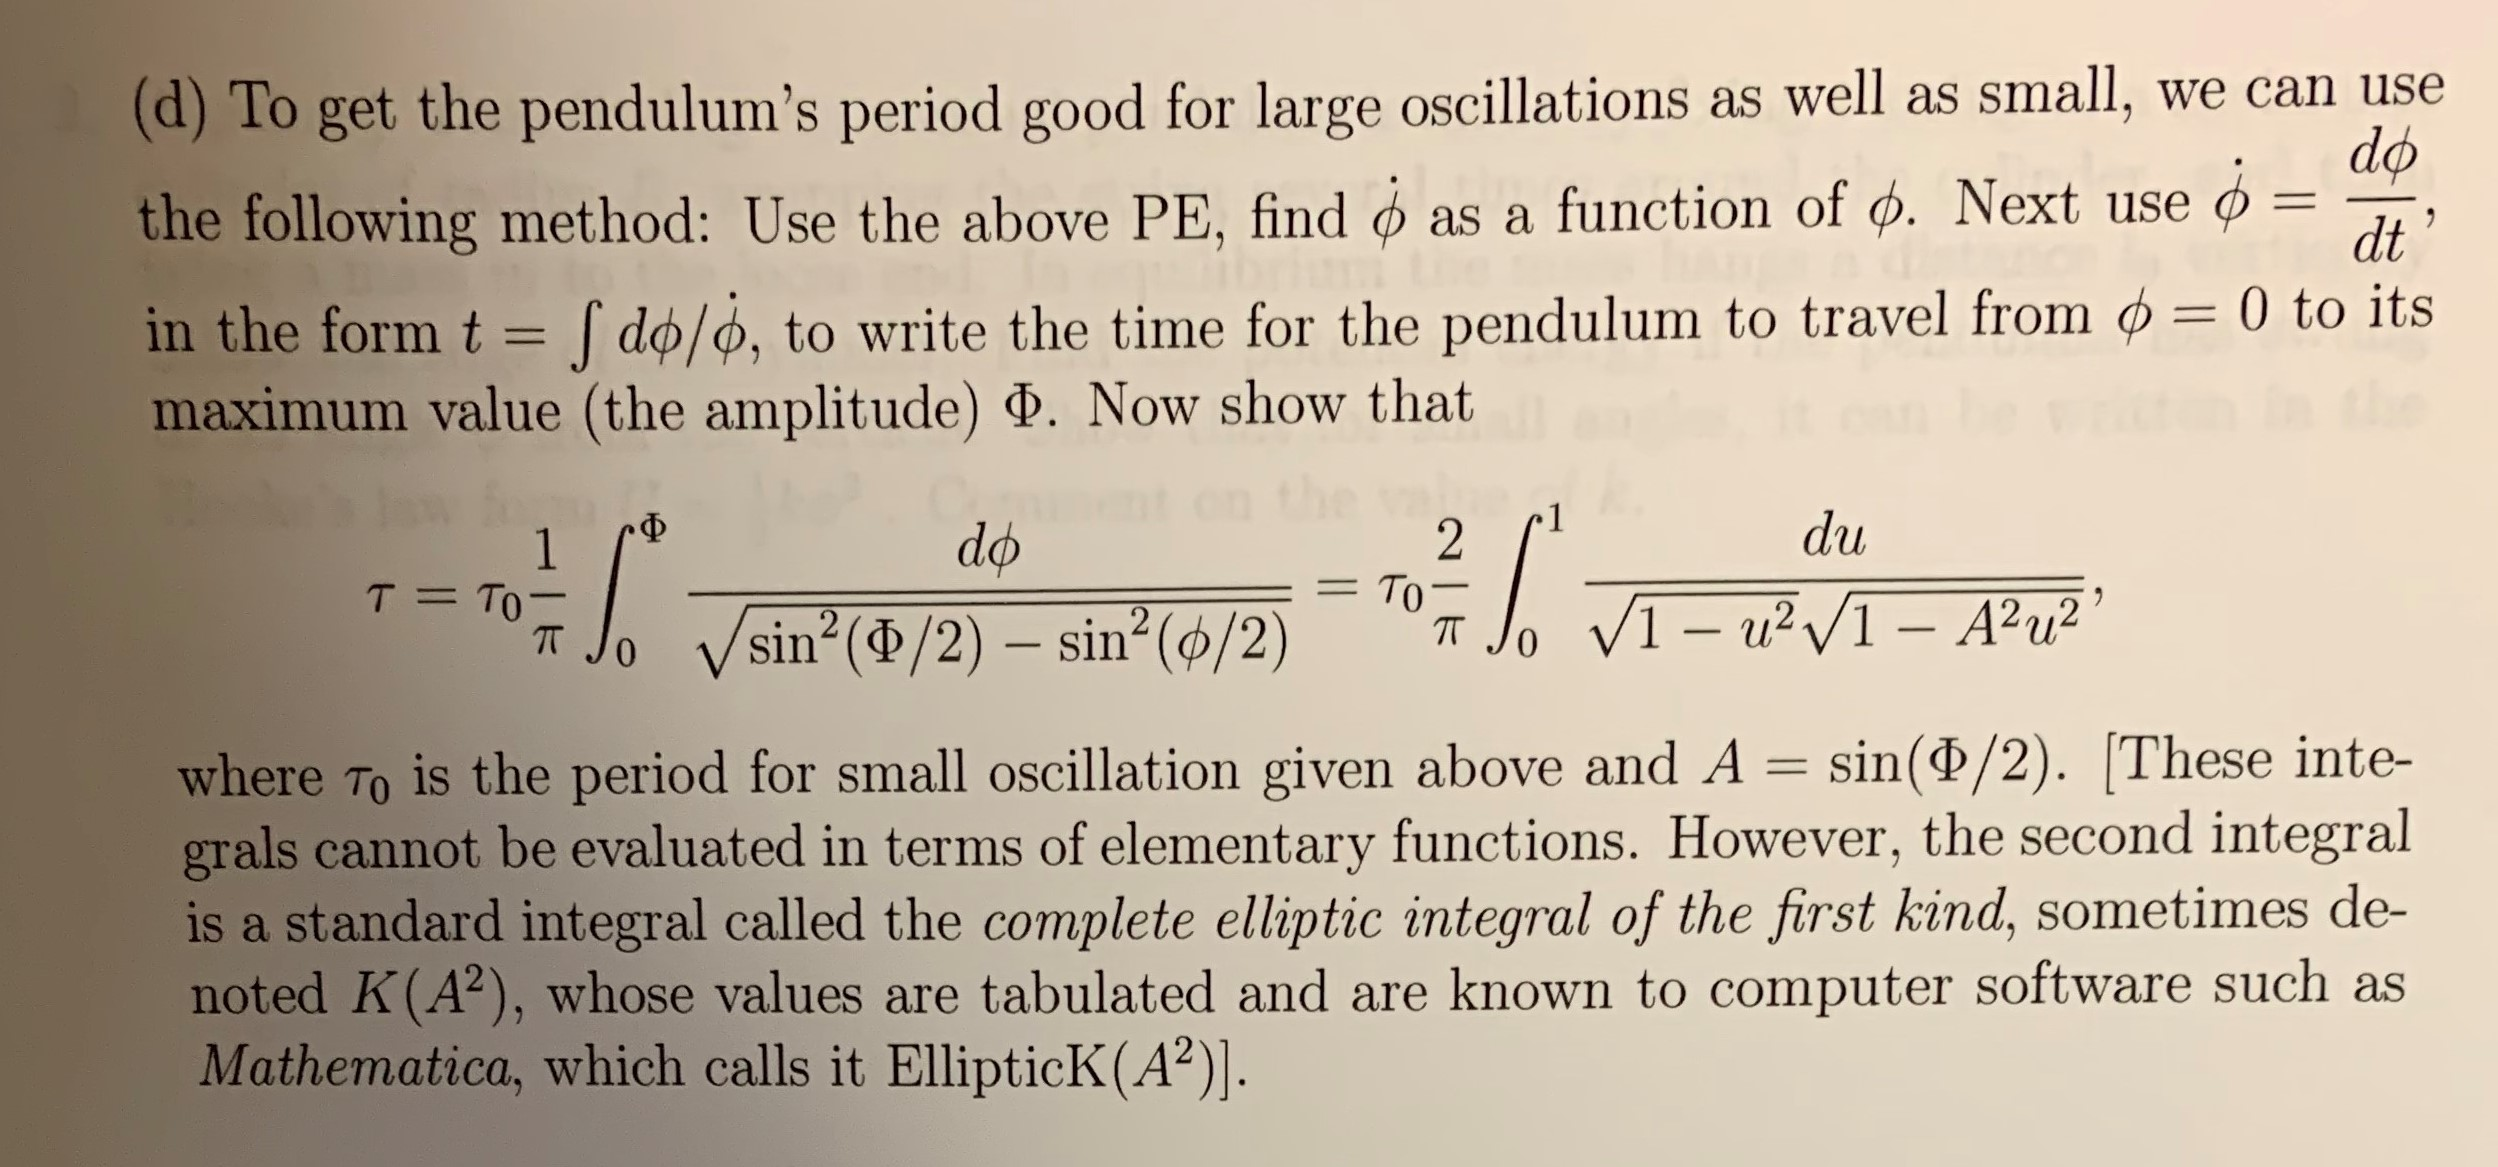 (d)To get the pendulum's period good for large oscillations as well as small, the following method: Use the above PE, find we can use do as a function of d. Next use 11 dt in the form t do/o, to write the time for the pendulum to travel from ø = 0 to its maximum value (the amplitude) . Now show that du -Ф do 2 То - T TO 1 VI-u2I-A2u2 sin (d/2) sin2 (ø/2) 0 is the period for small oscillation given above and A = sin(P/2). These inte- where To grals cannot be evaluated in terms of elementary functions. However, the second integral is a standard integral called the complete elliptic integral of the first kind, sometimes de- noted K(A2), whose values are tabulated and are known to computer software such as Mathematica, which calls it EllipticK (A2)].